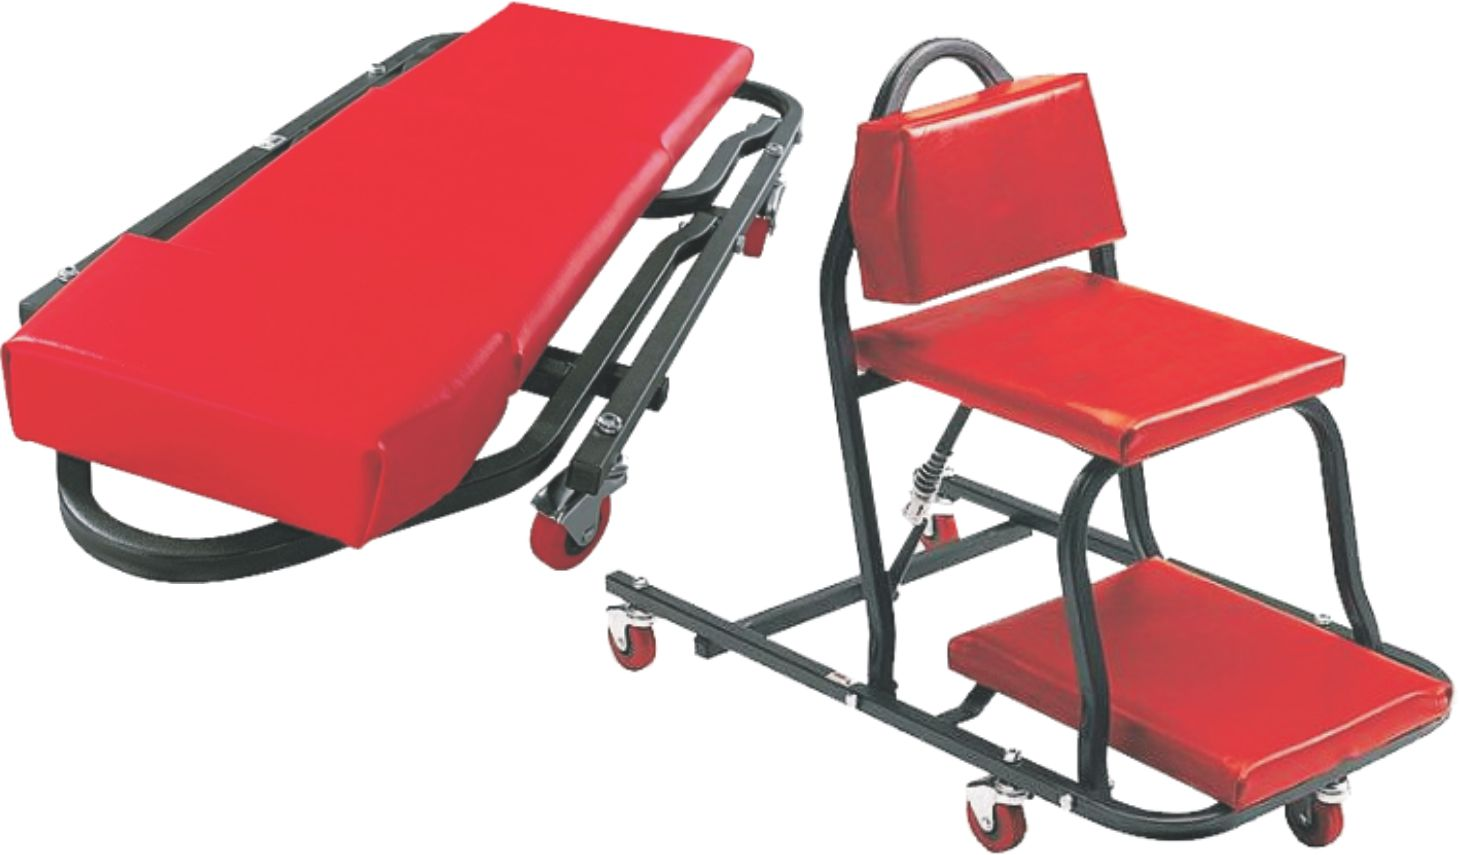 20315 - Convertible Combo Creeper & Seat